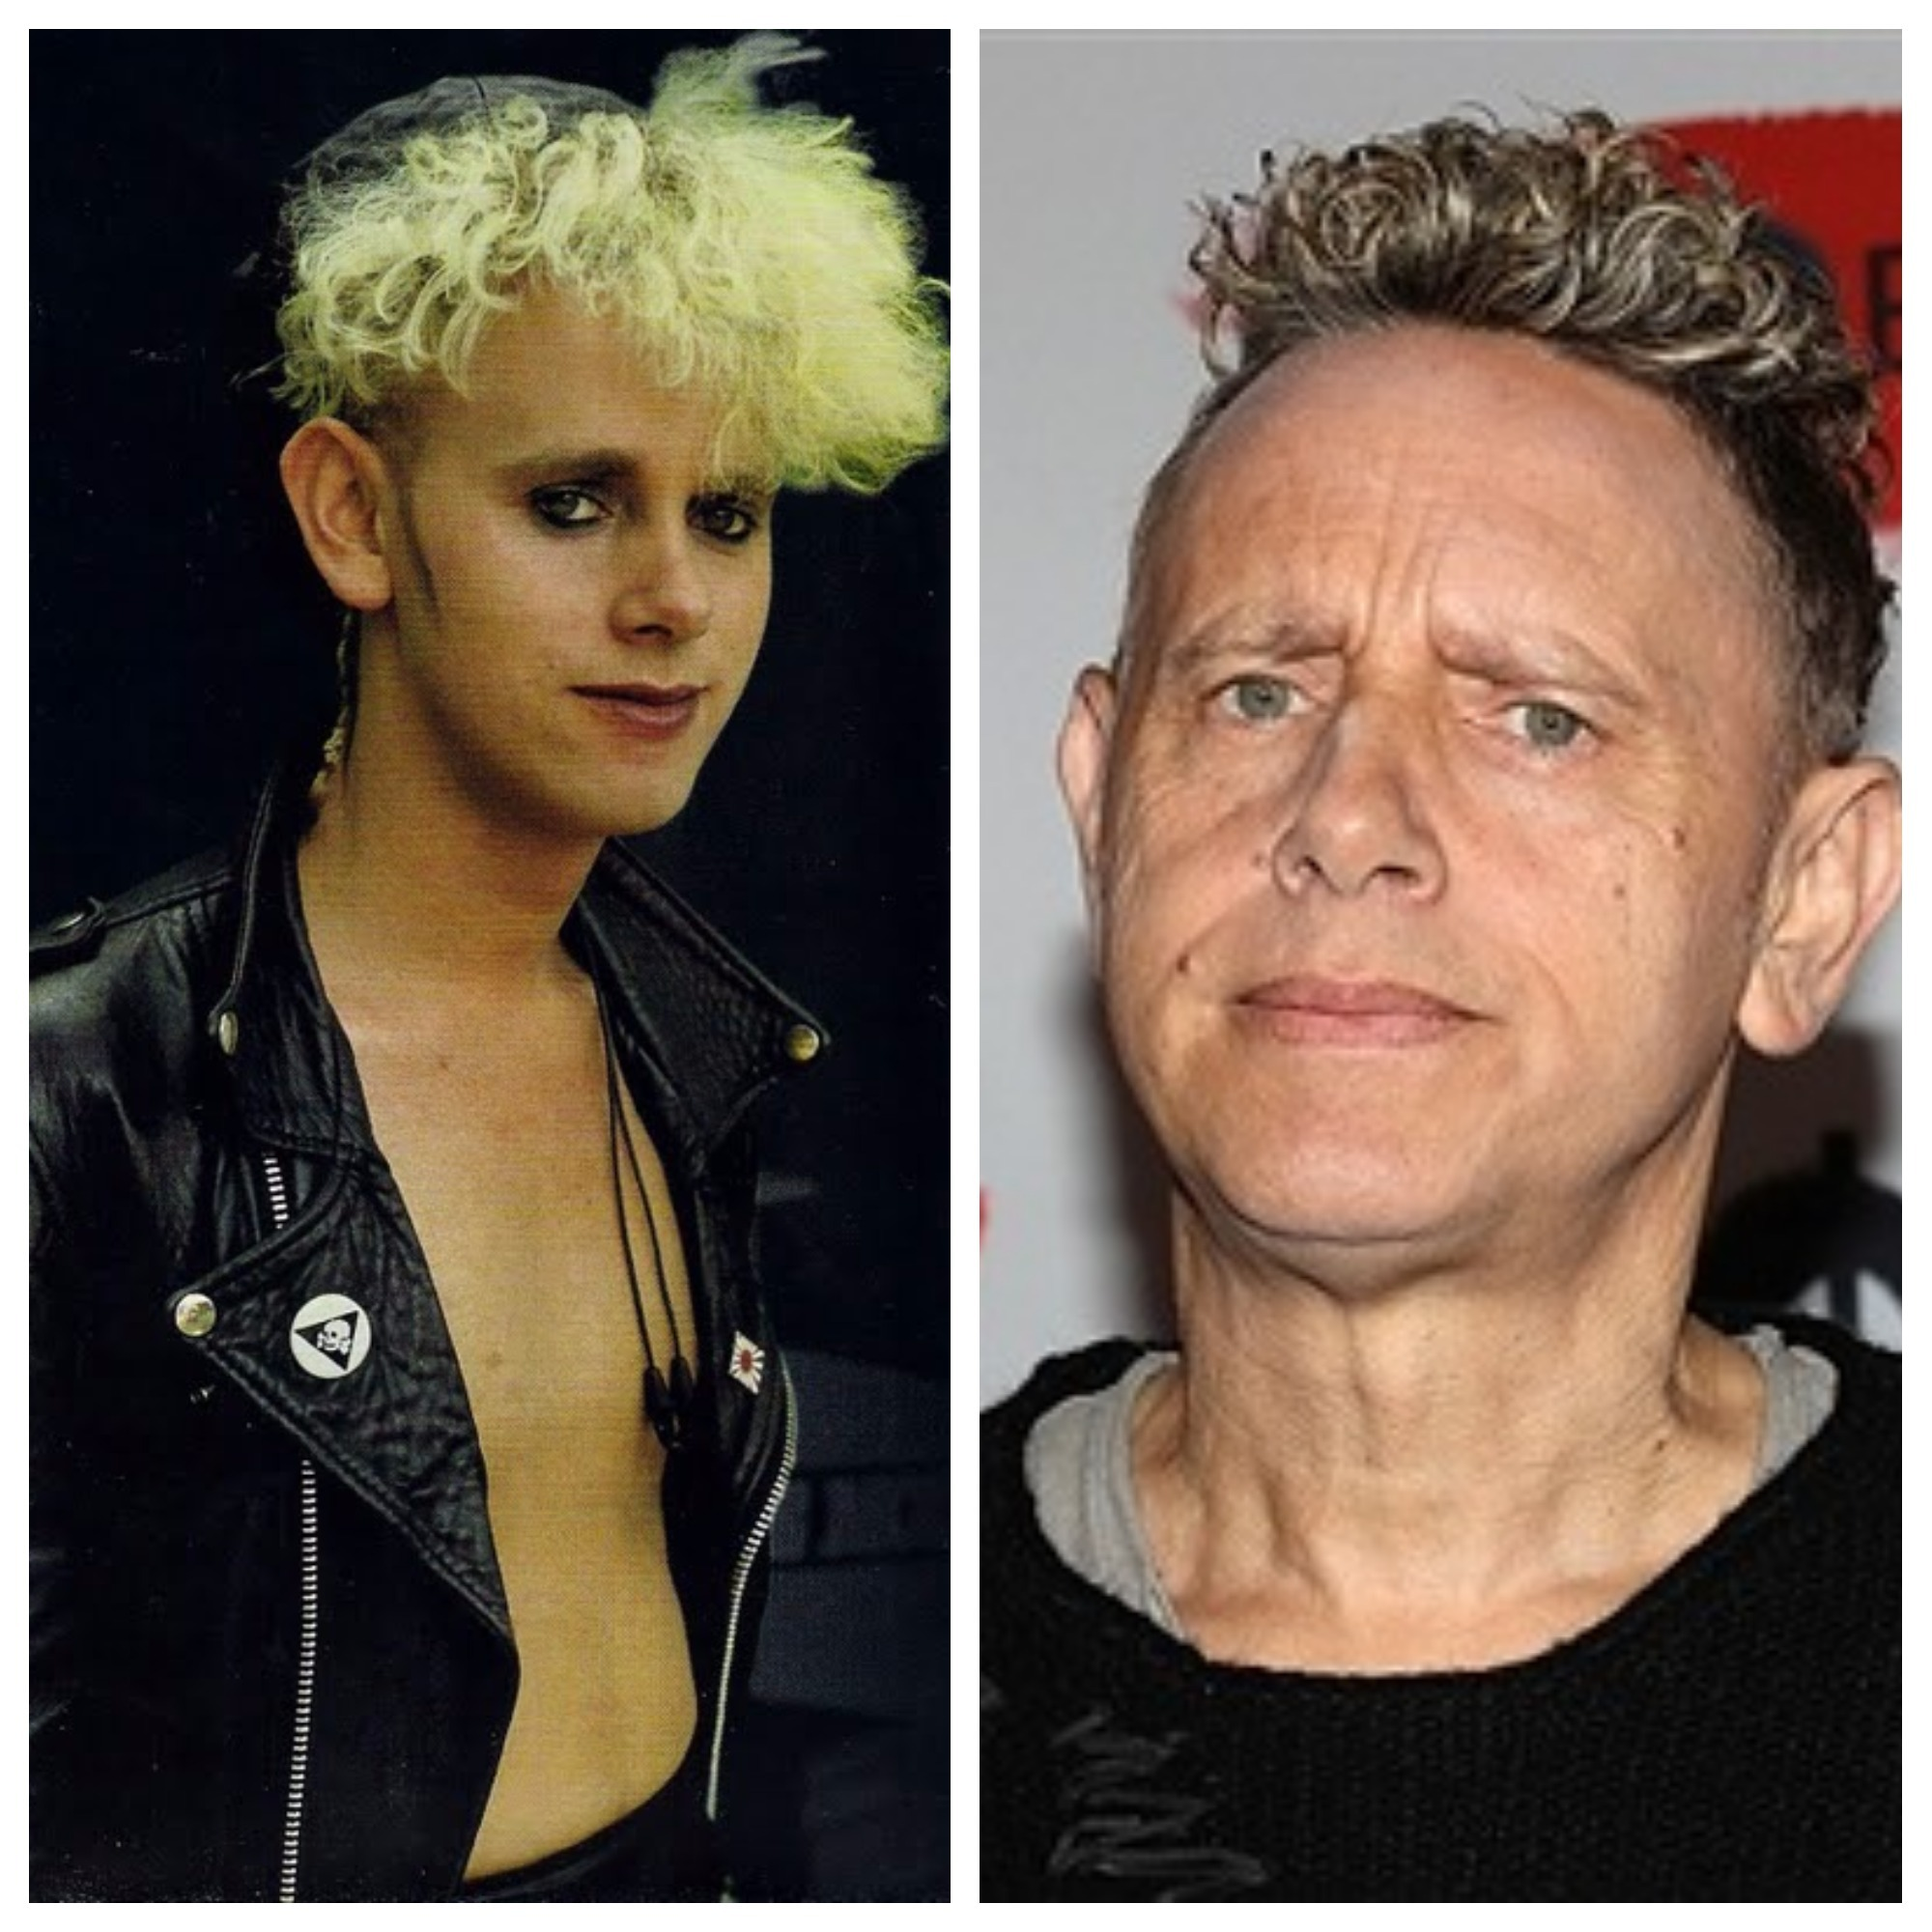 Martin Gore 2017, What does Depeche Mode look like now, Depeche Mode 2017, Before and After depeche mode, celebs, Music